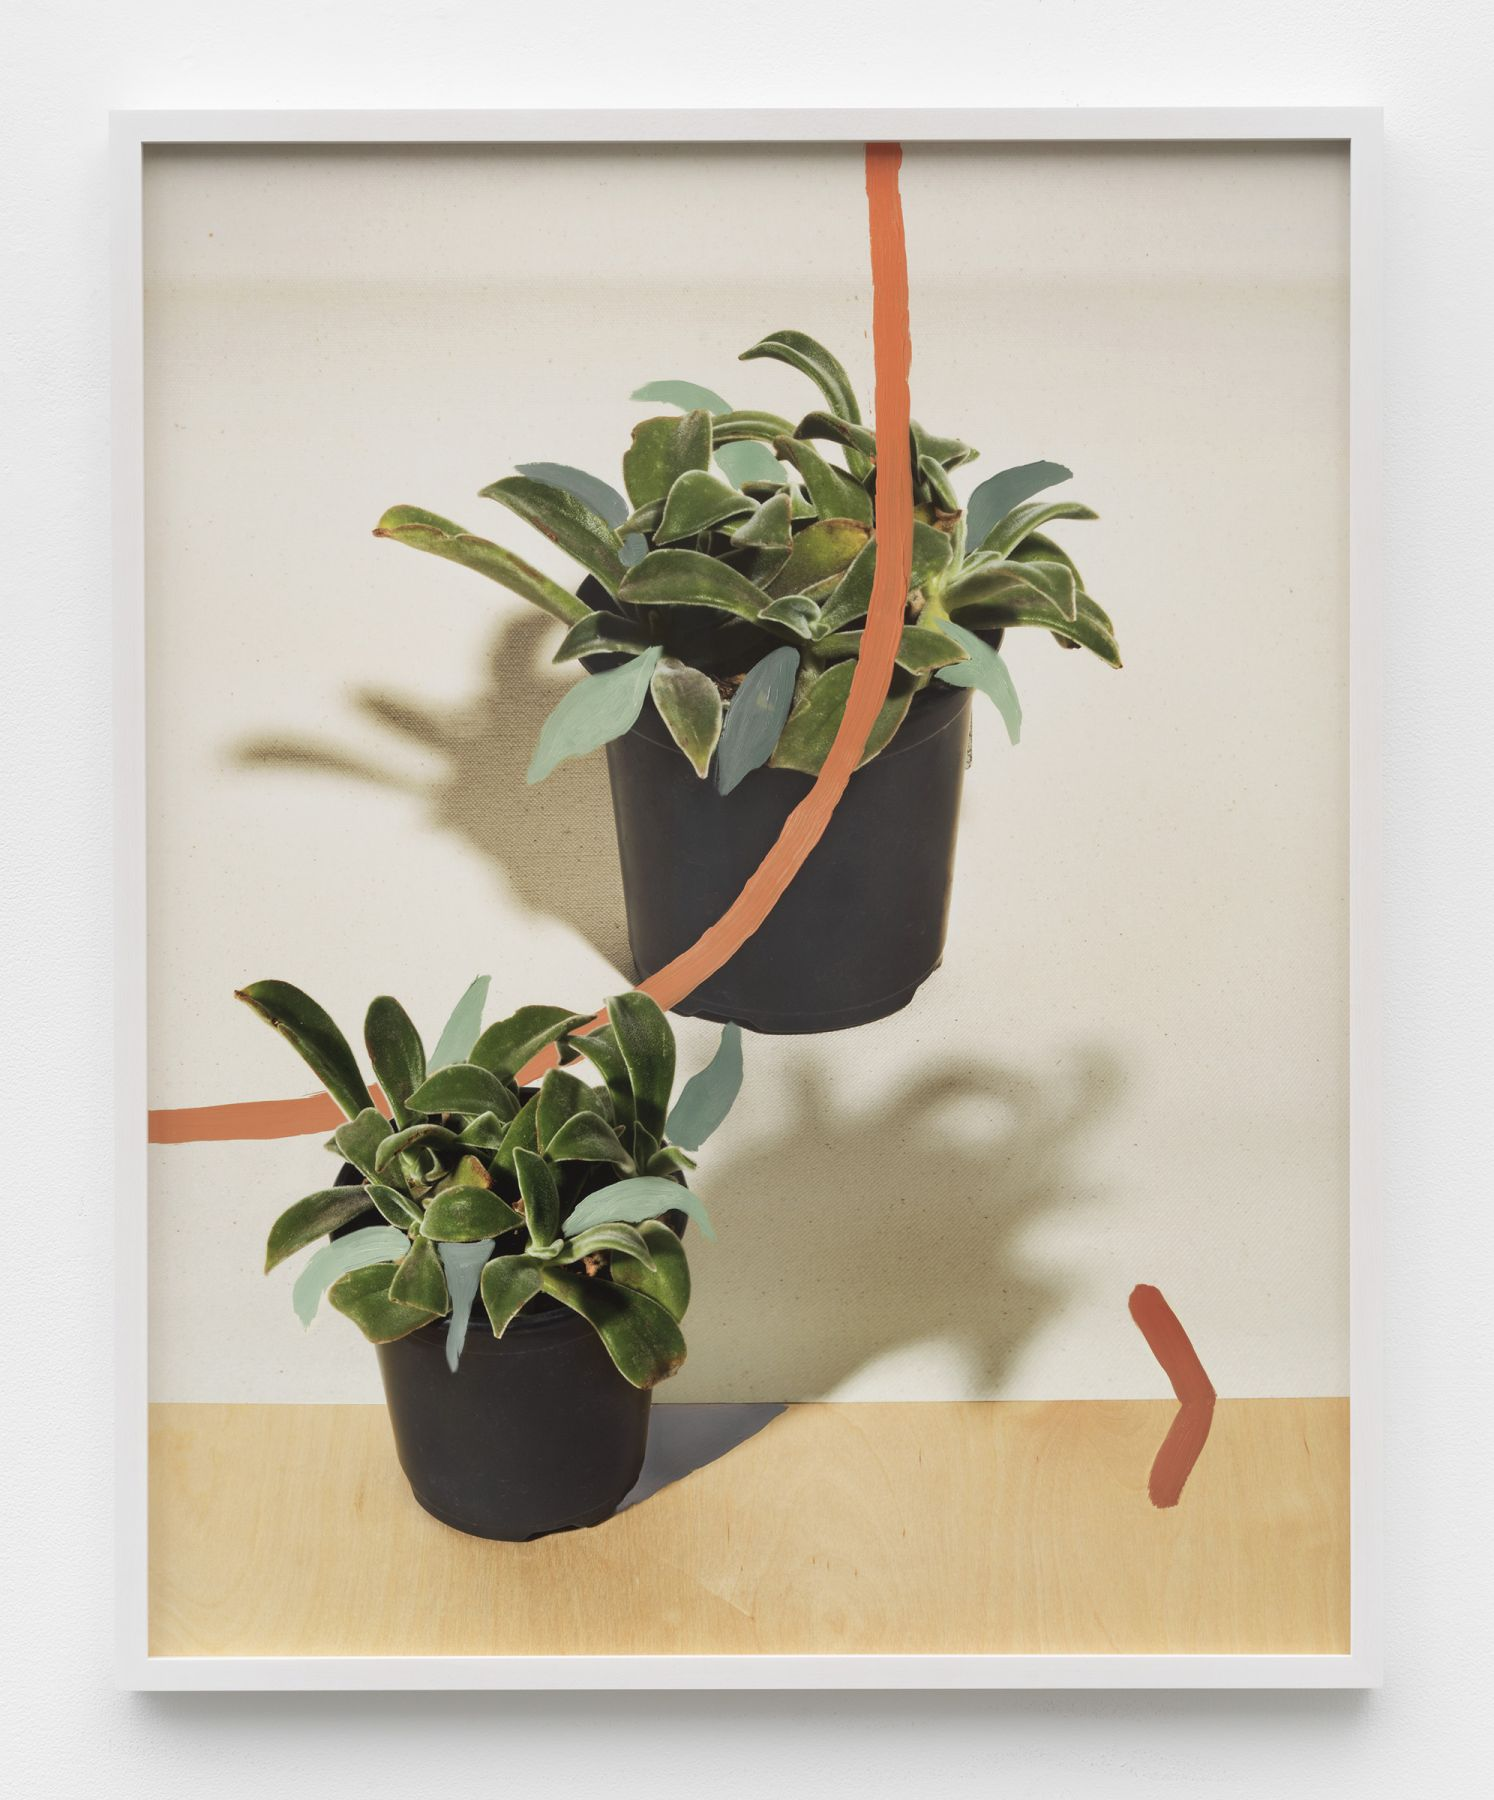 a John Houck print of plants for sale at a gallery in New York